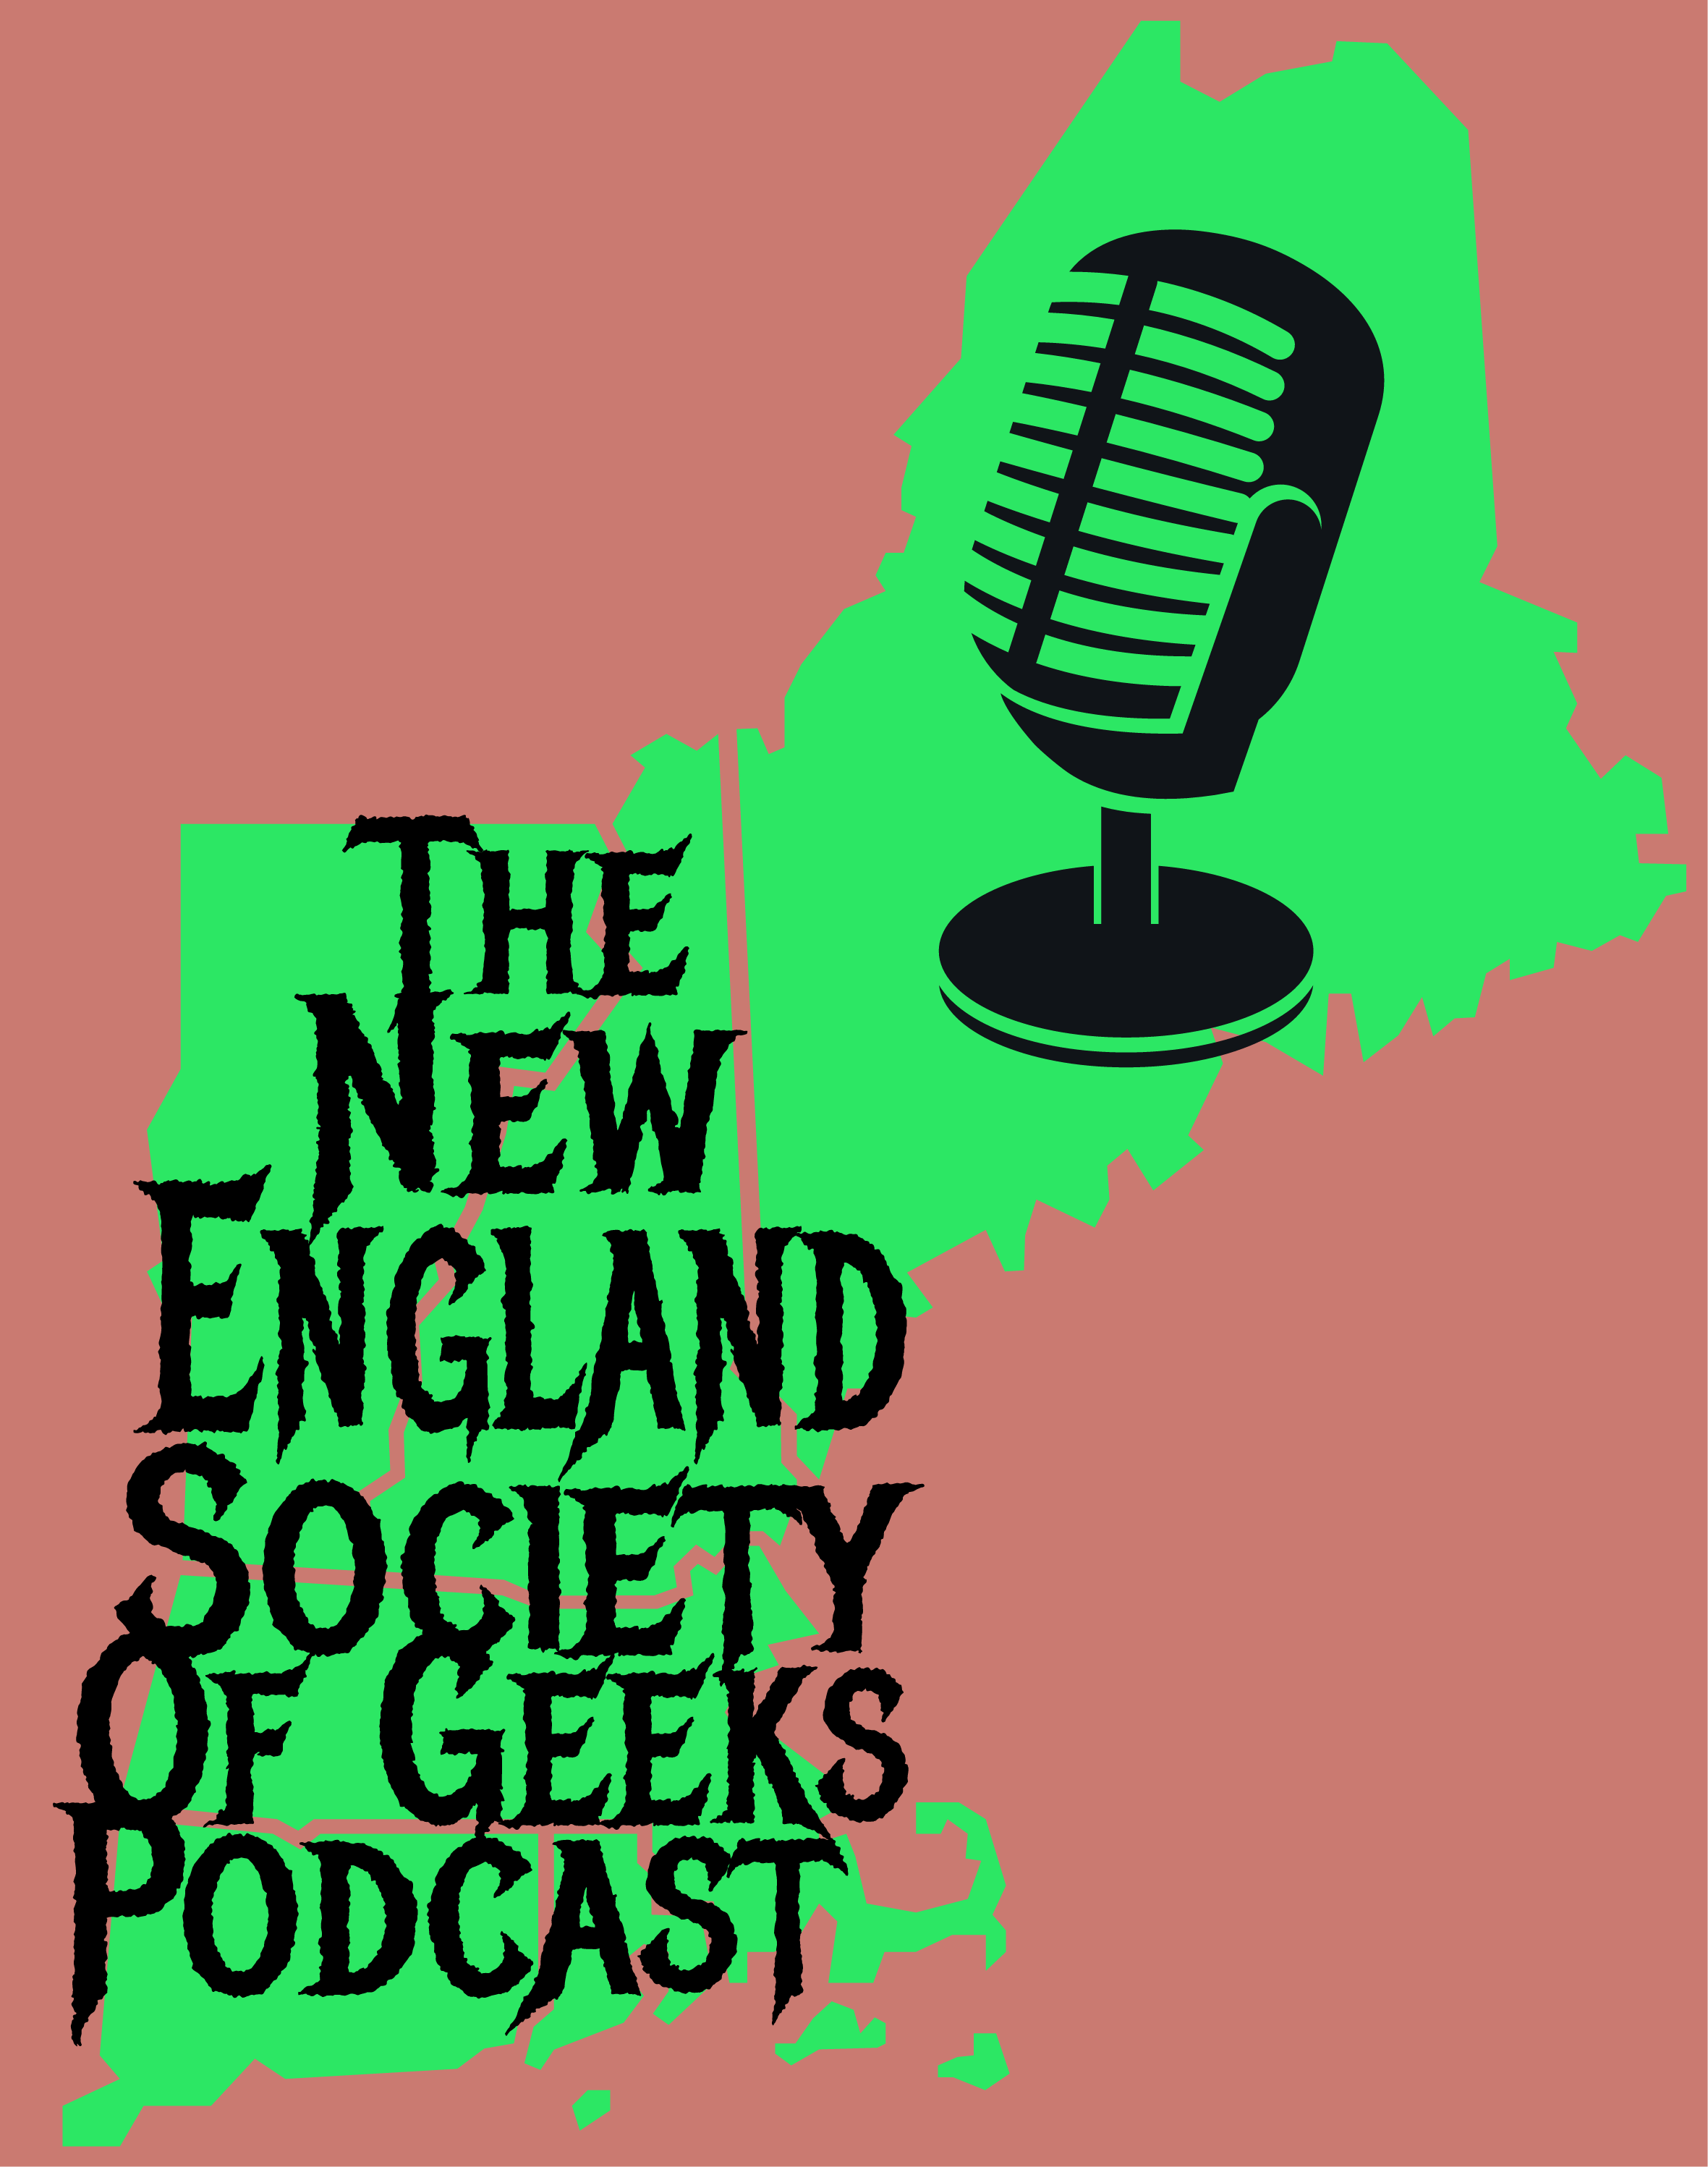 The New England Society of Geeks